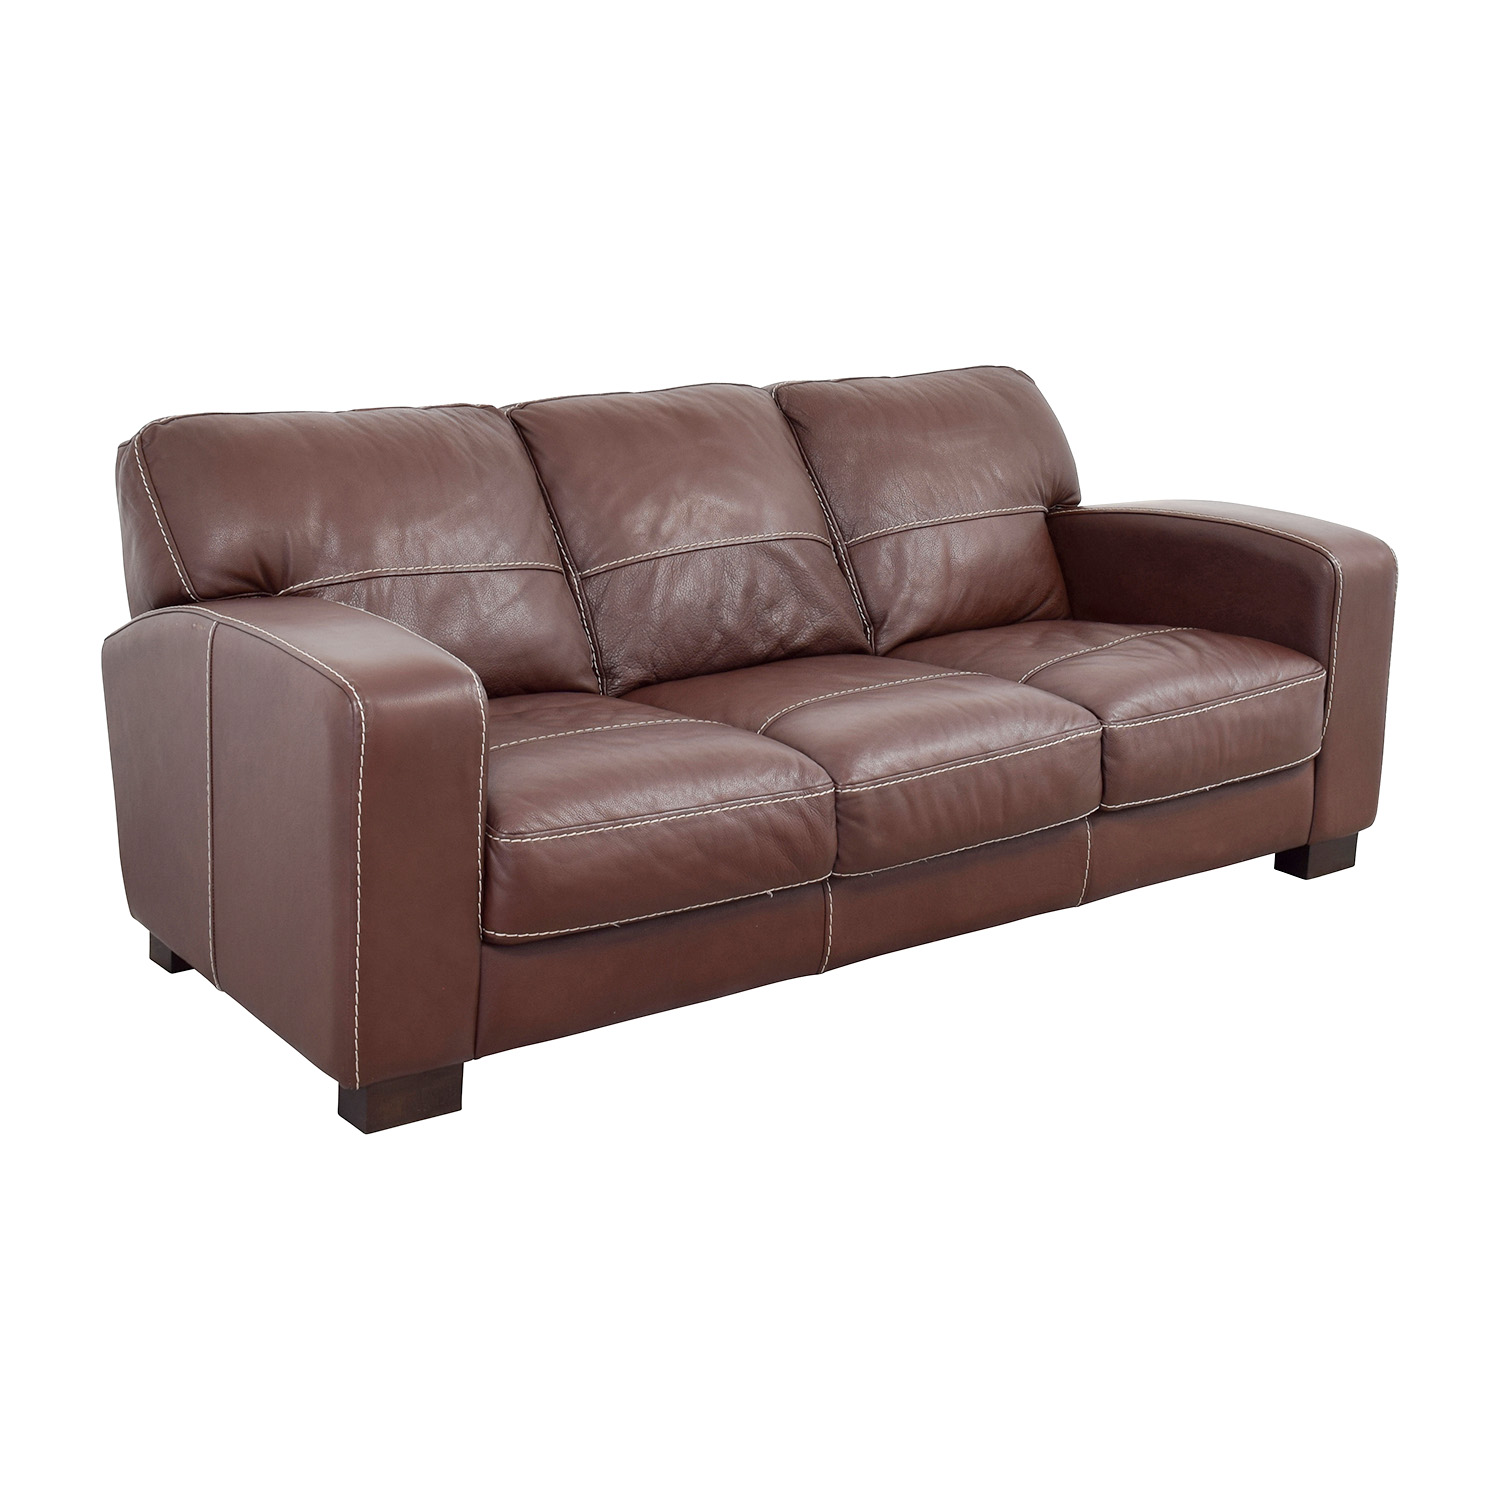 62% OFF Bob s Furniture Bob s Furniture Antonio Brown Leather